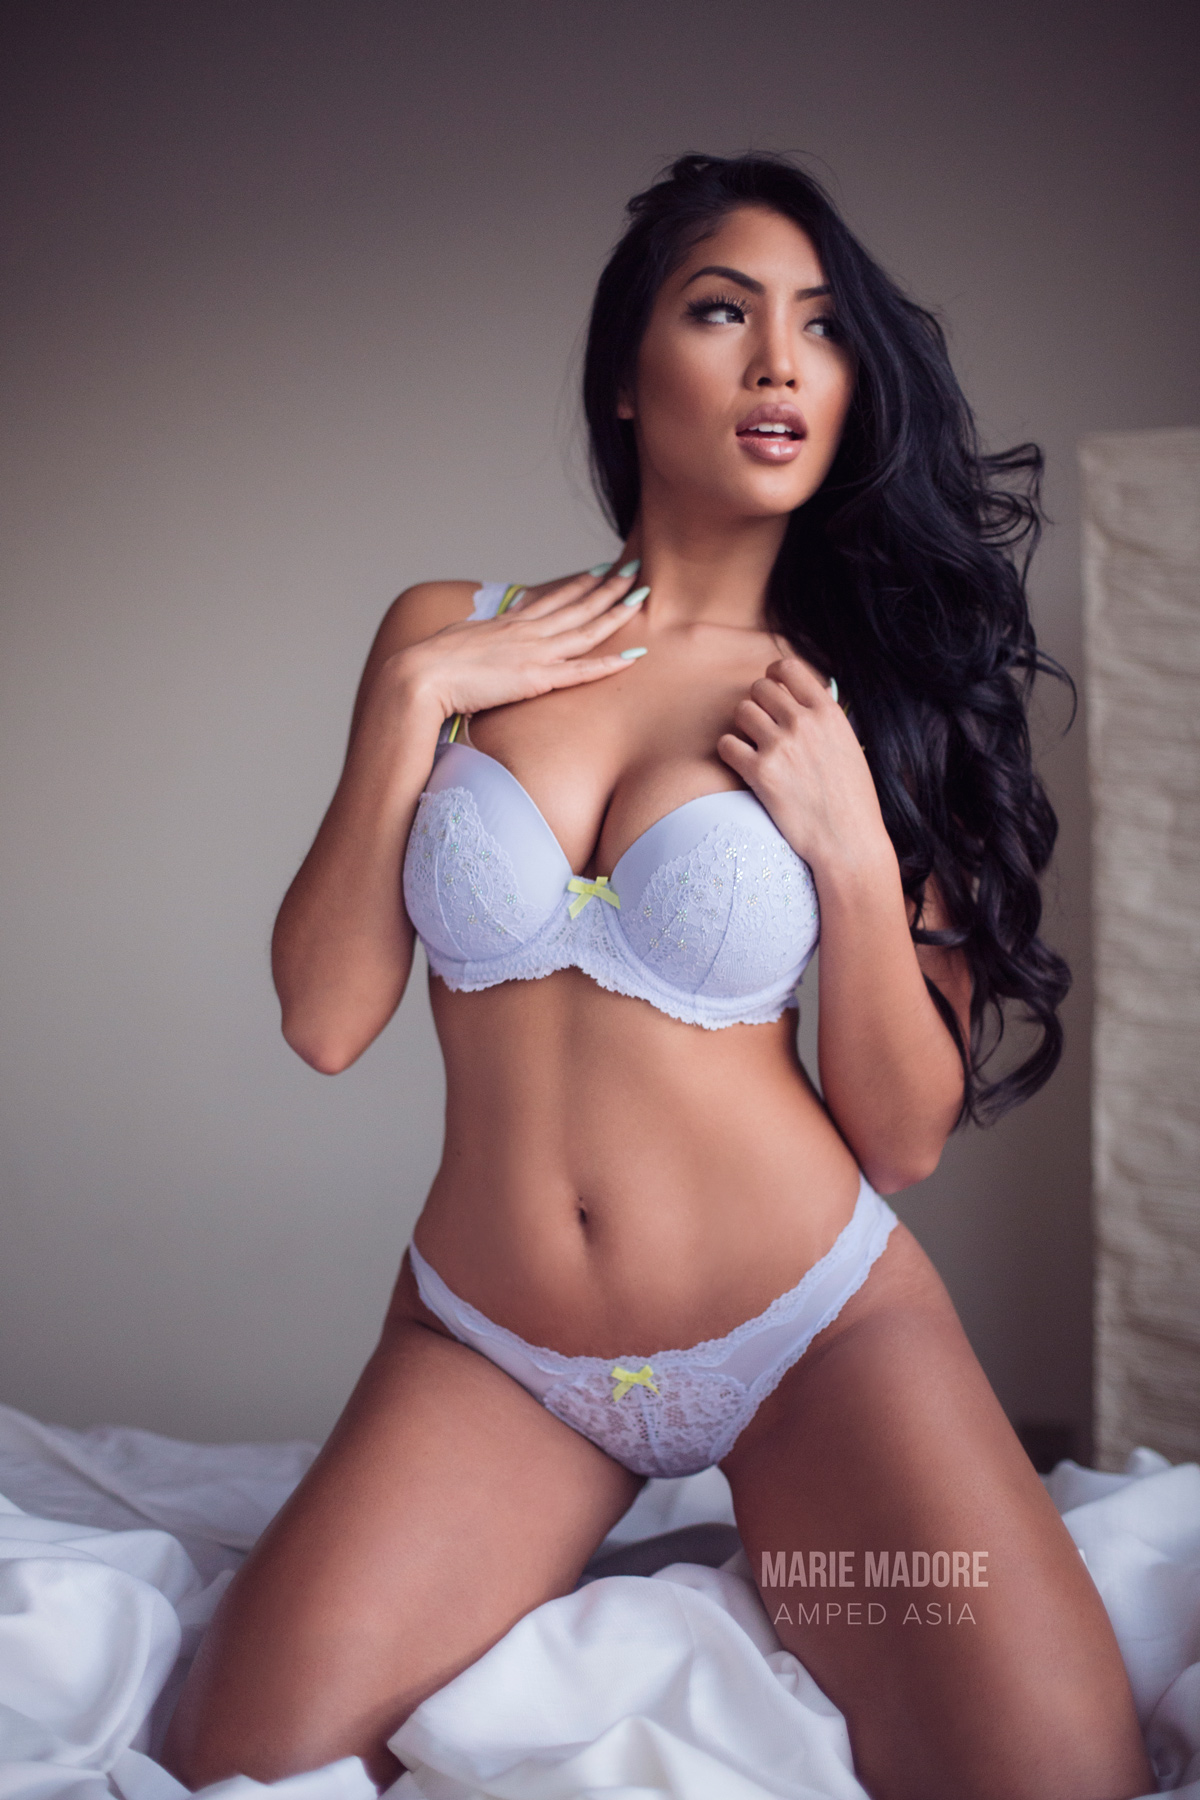 marie madore